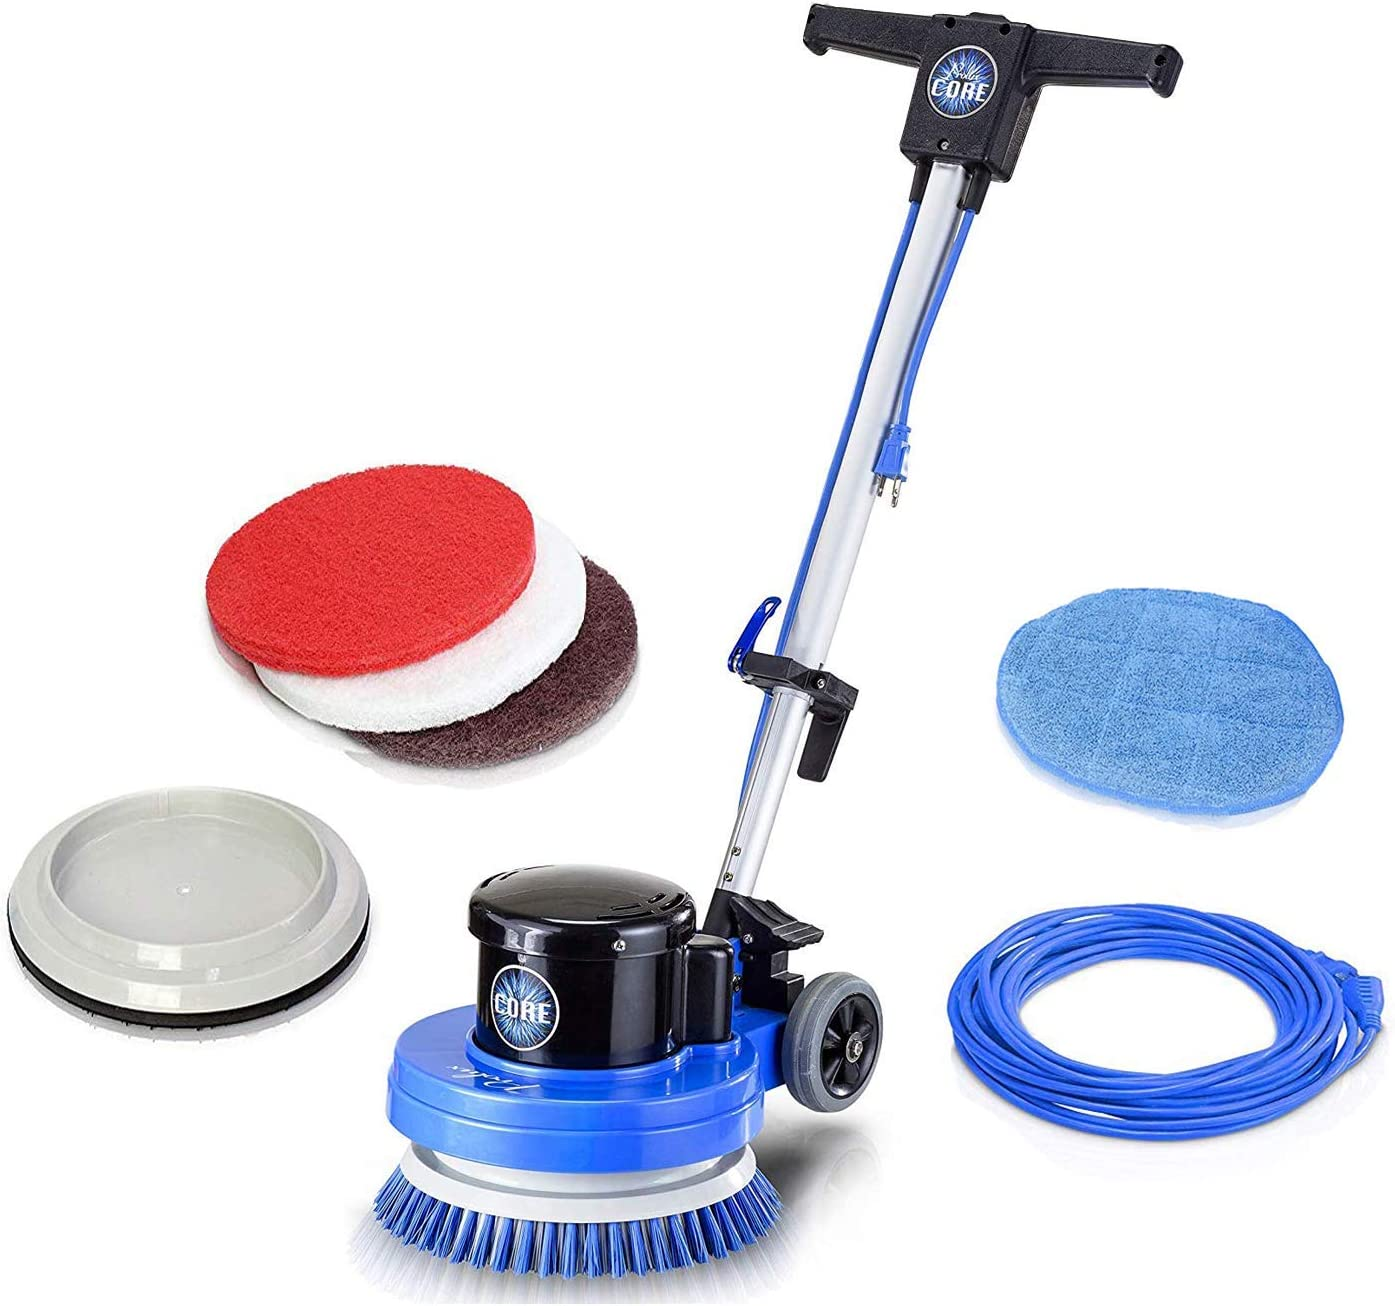 Buy Prolux Core Floor Buffer - Heavy Duty Single Pad Commercial Floor  Polisher and Tile Scrubber Online in Indonesia. B07PN7DPKX